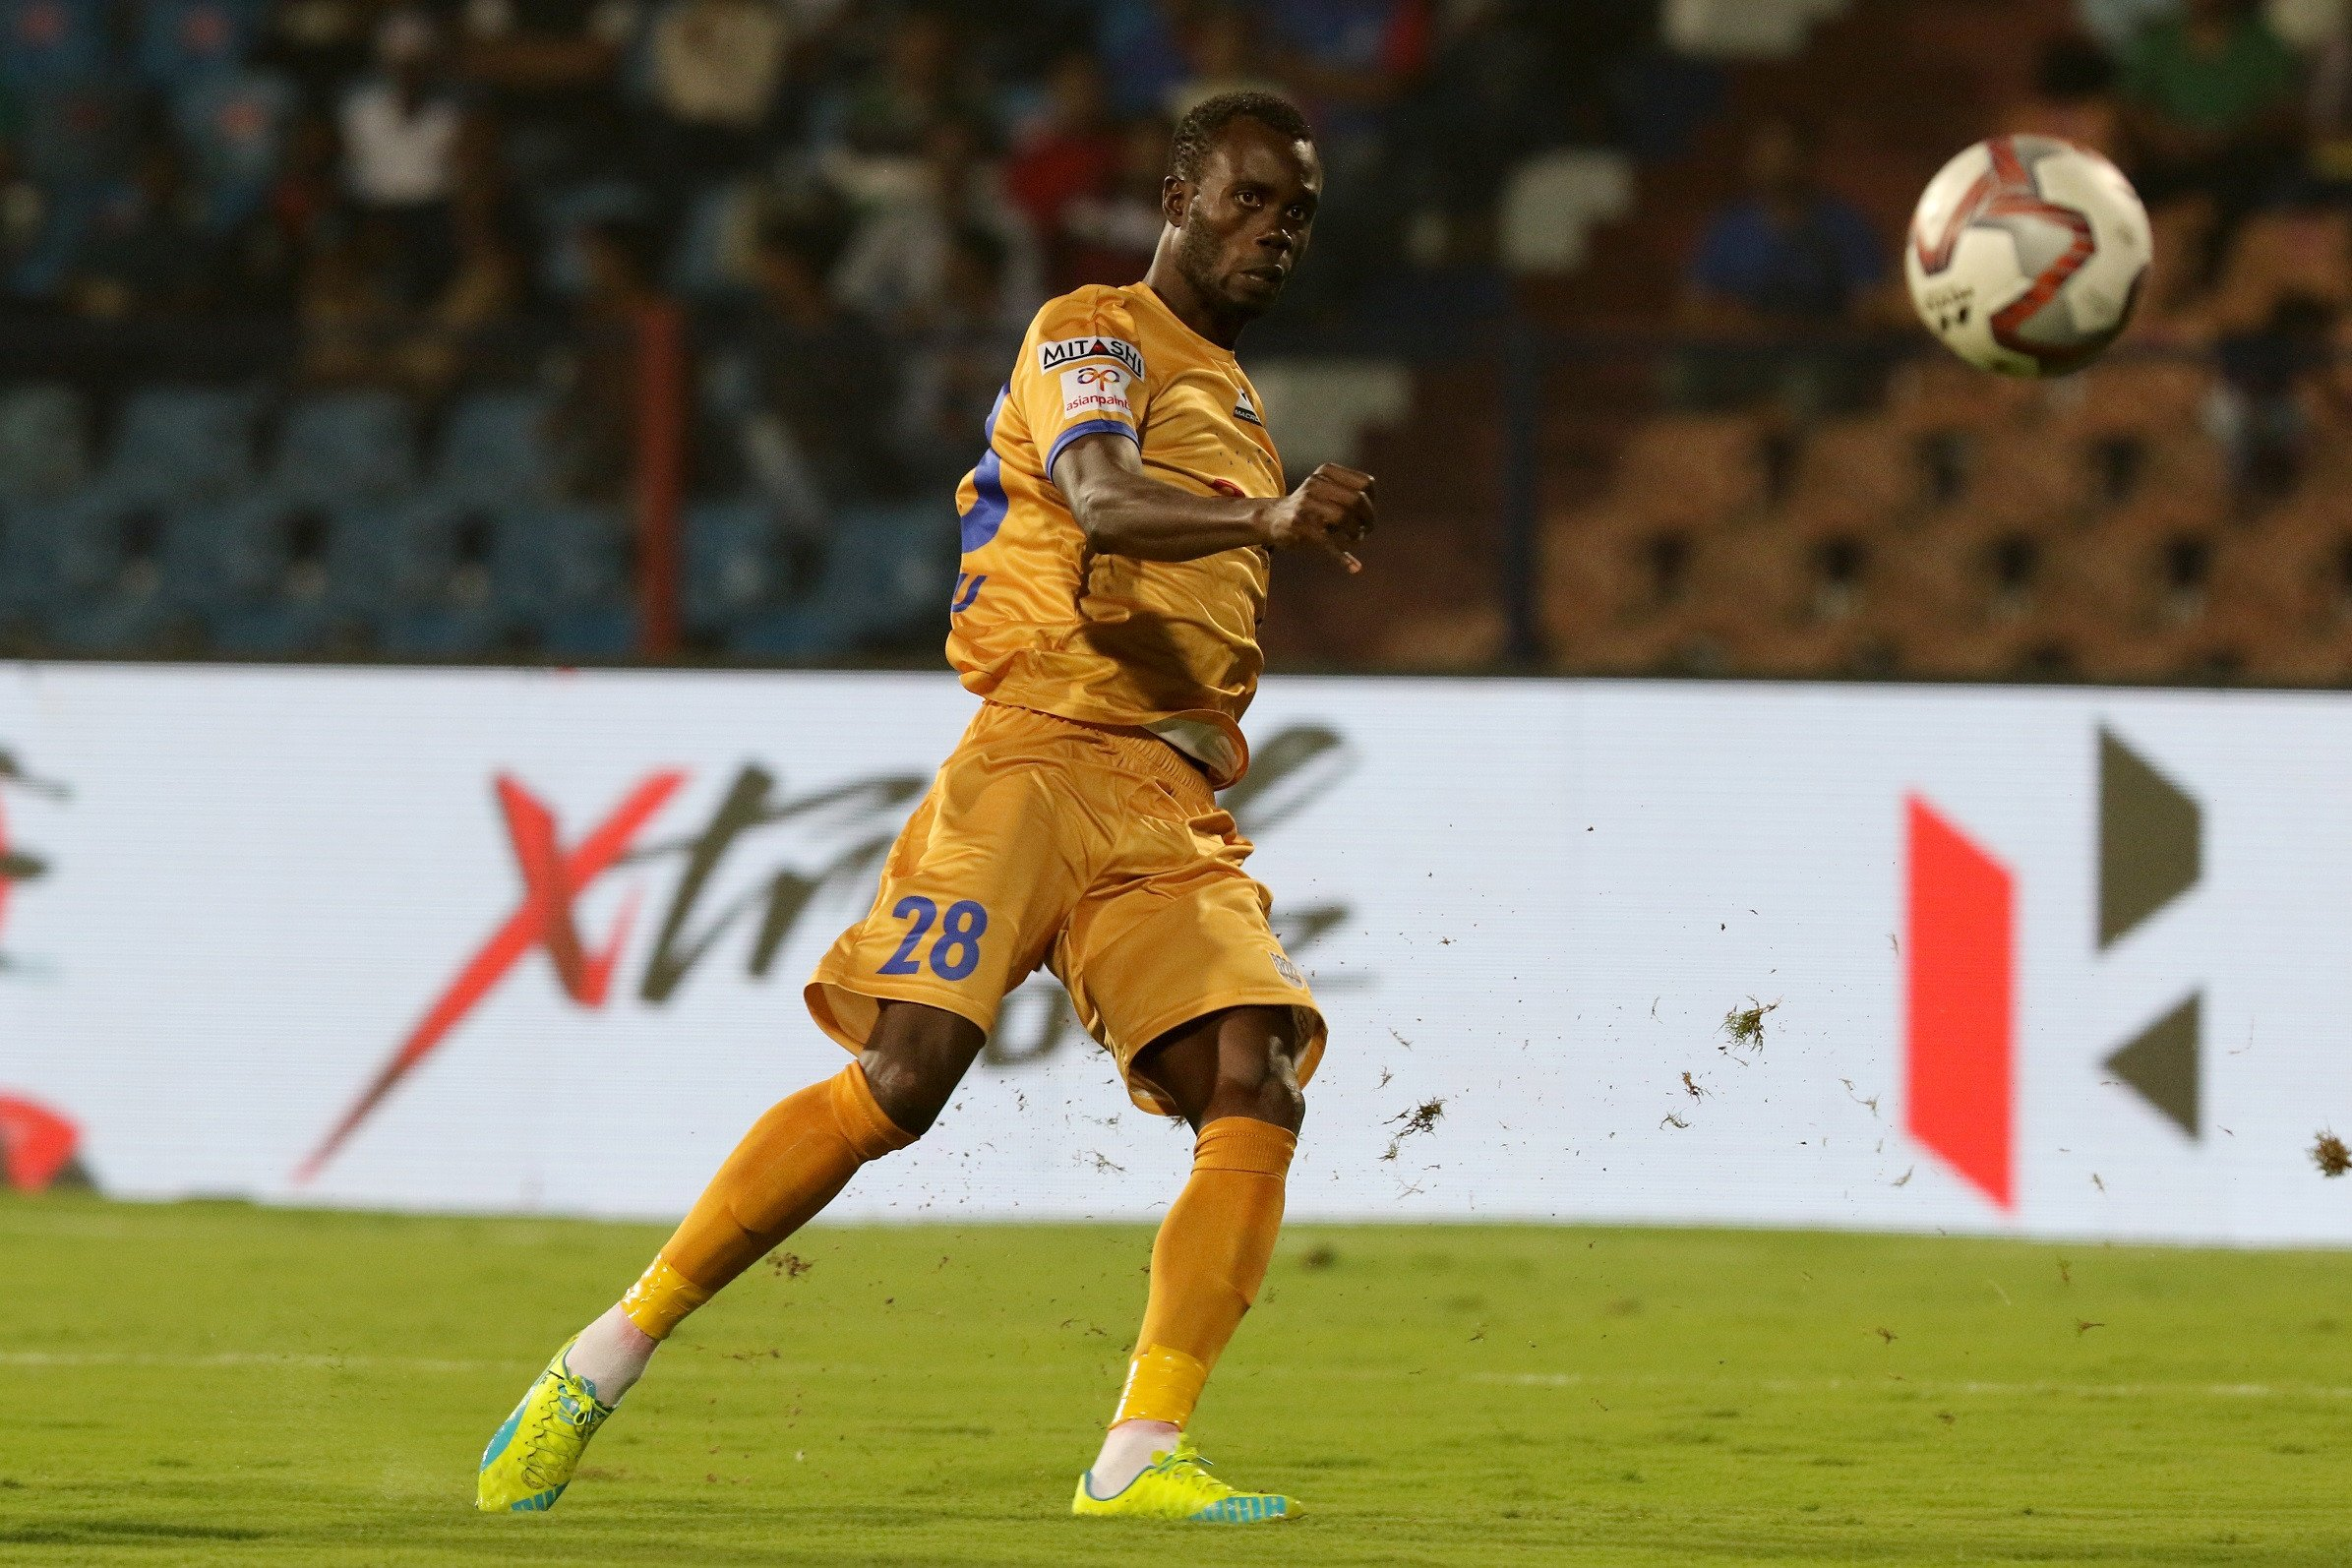 ISL 2019/20 Preview: Mumbai City FC to start their season with an encounter against Kerala Blasters FC